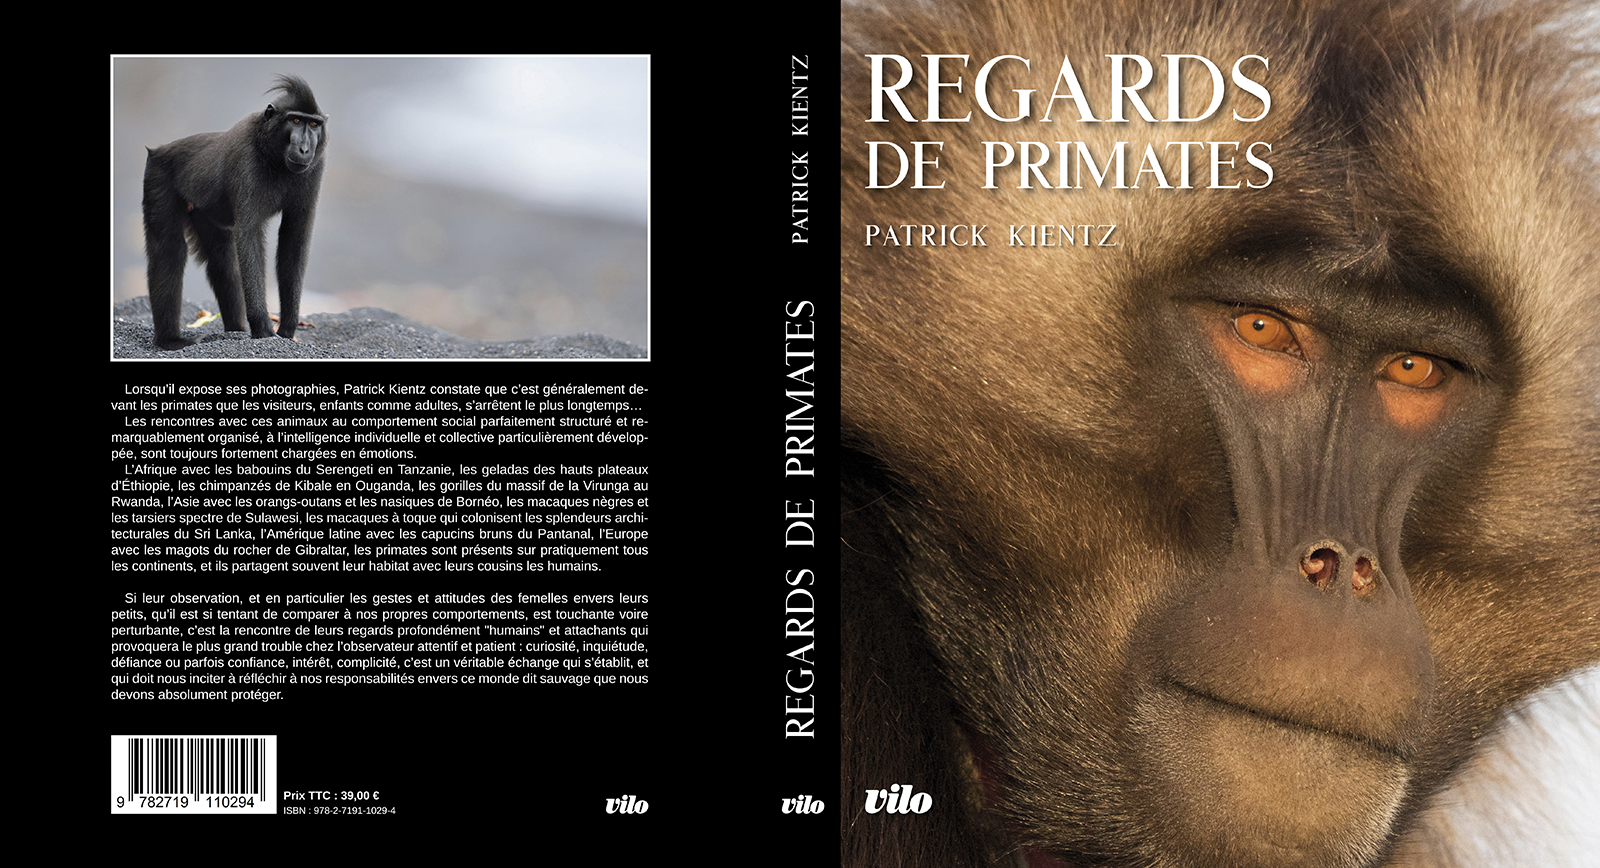 Regards de Primates